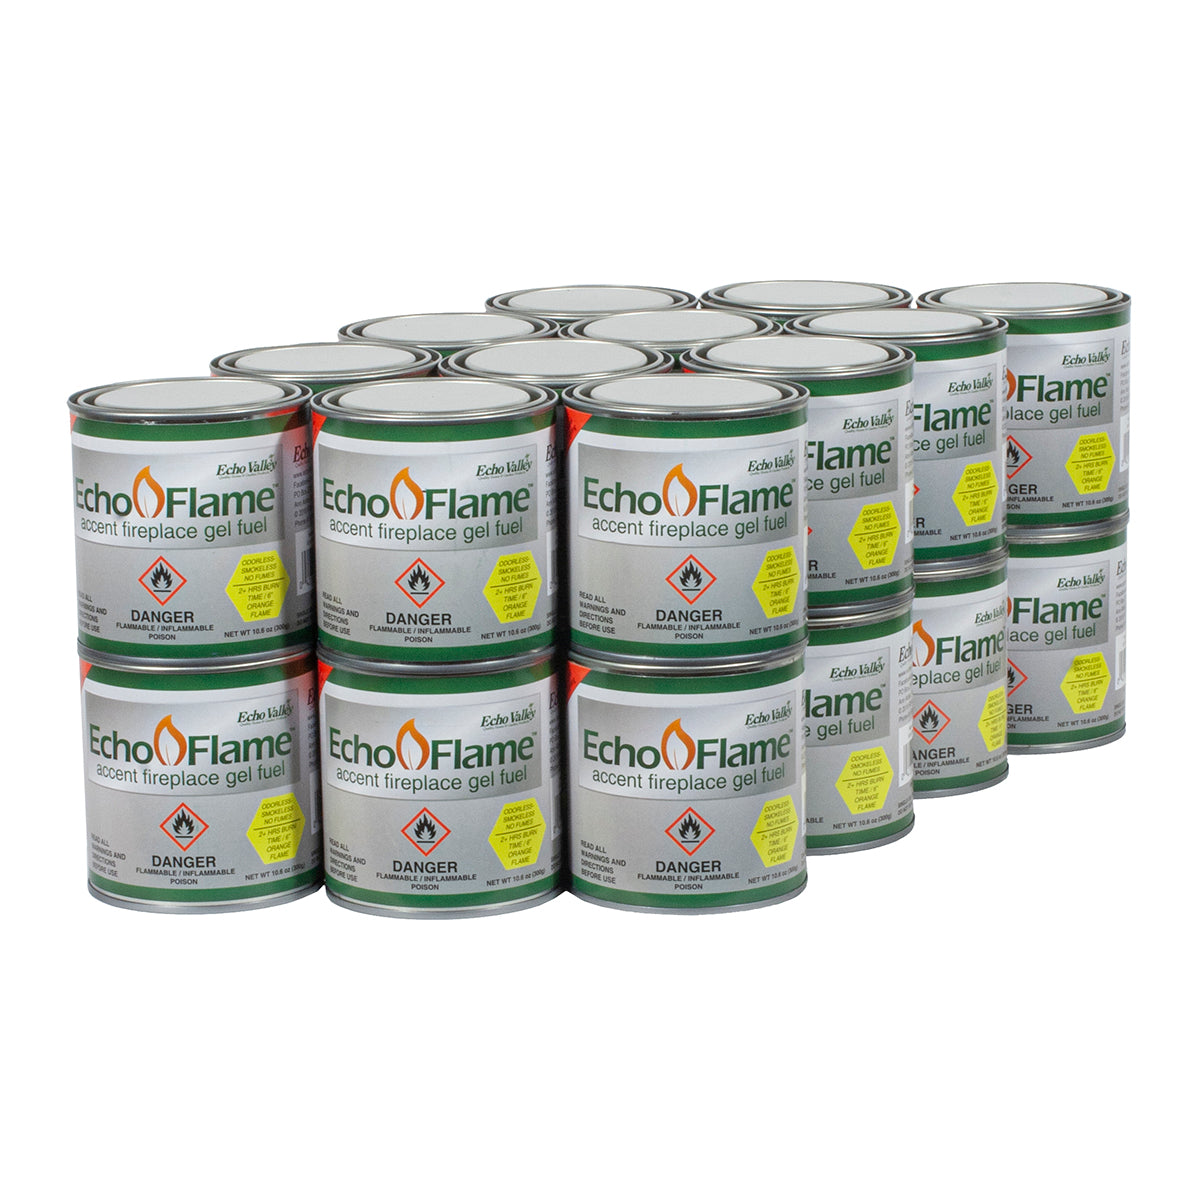 EchoFlame Gel Fuel (24 can set)